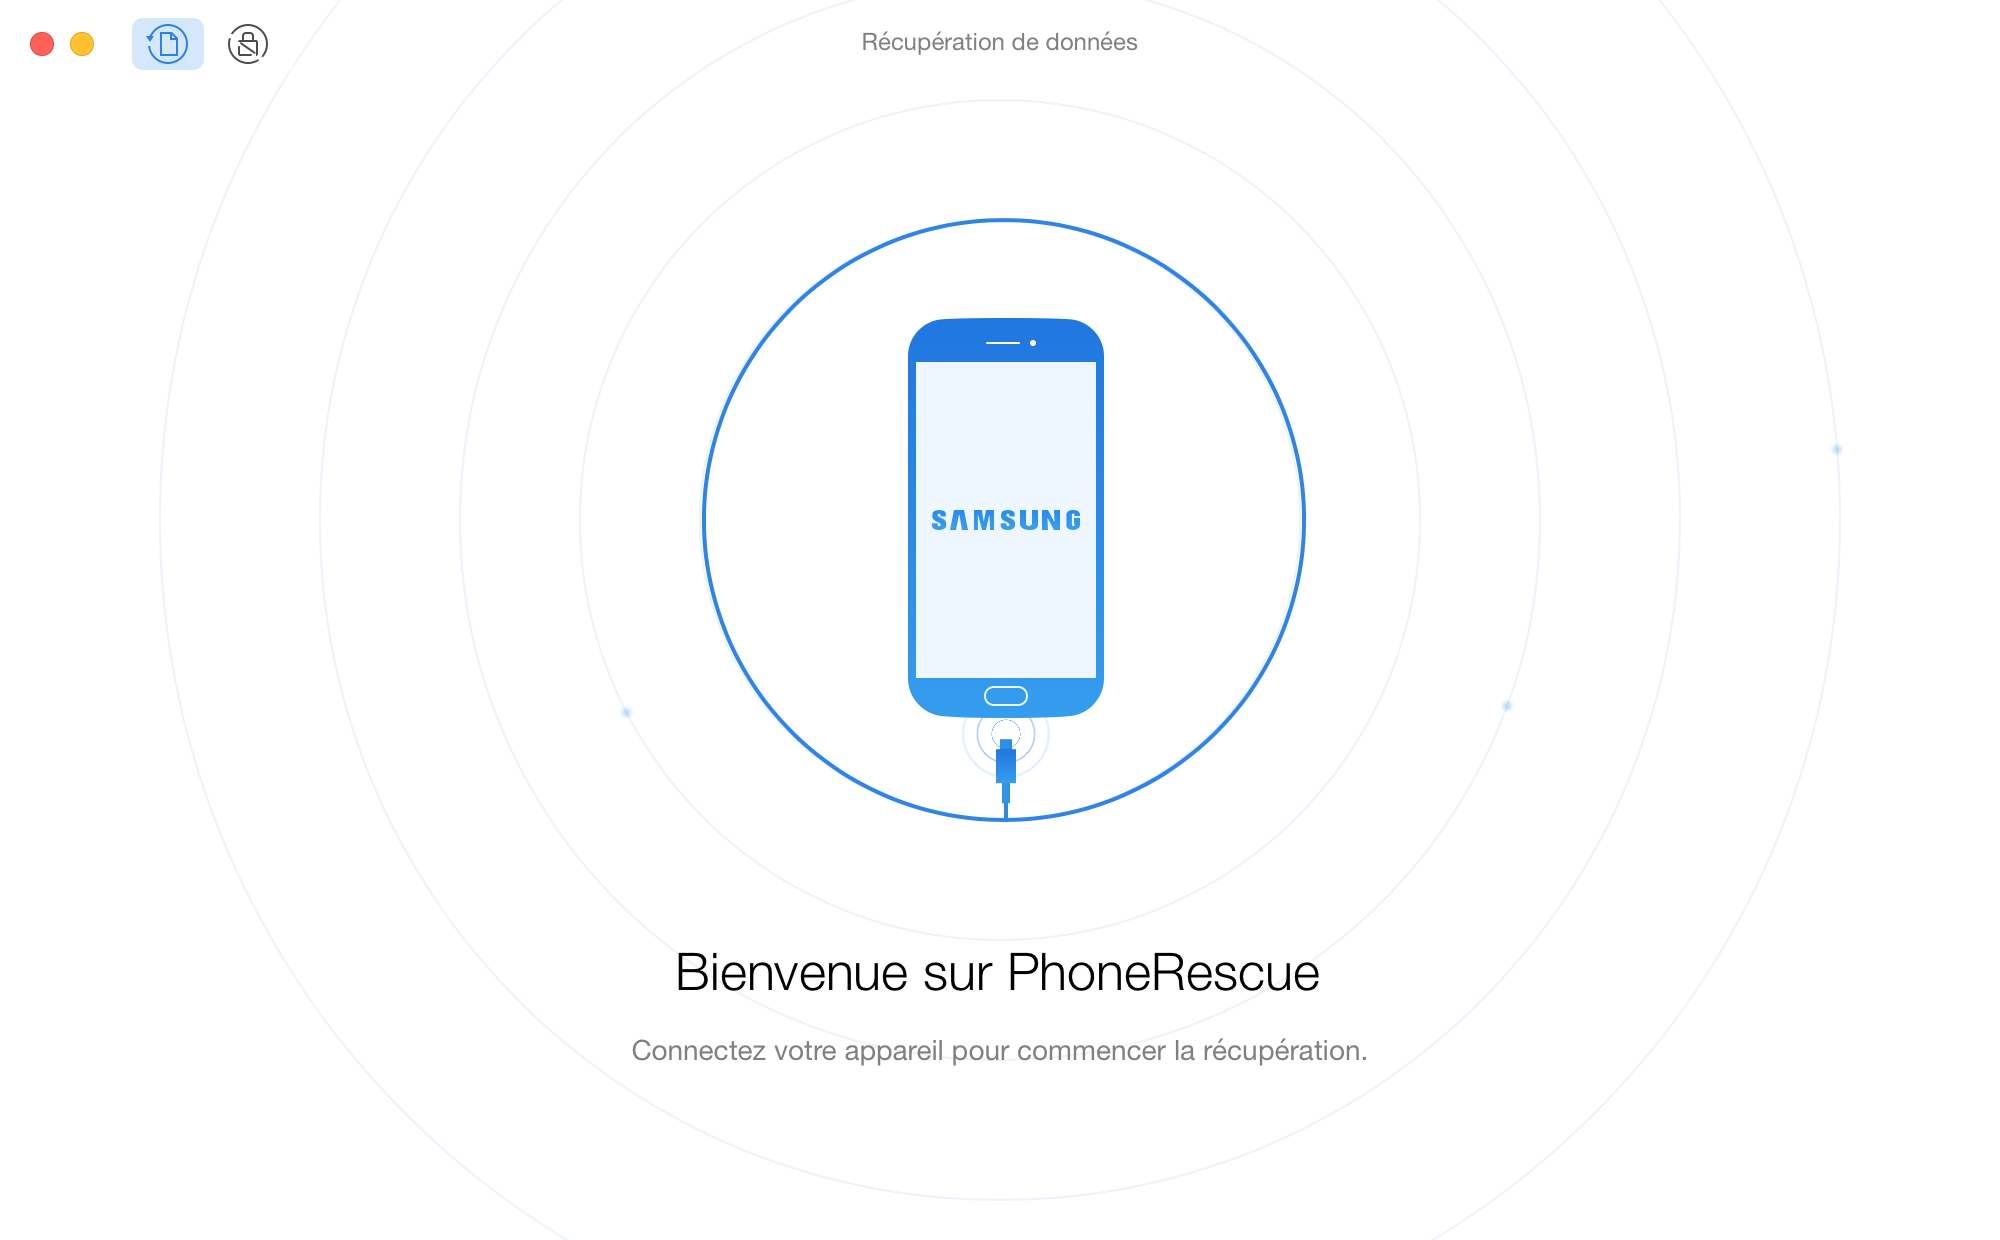 Interface d'acueil de PhoneRescue pour Android